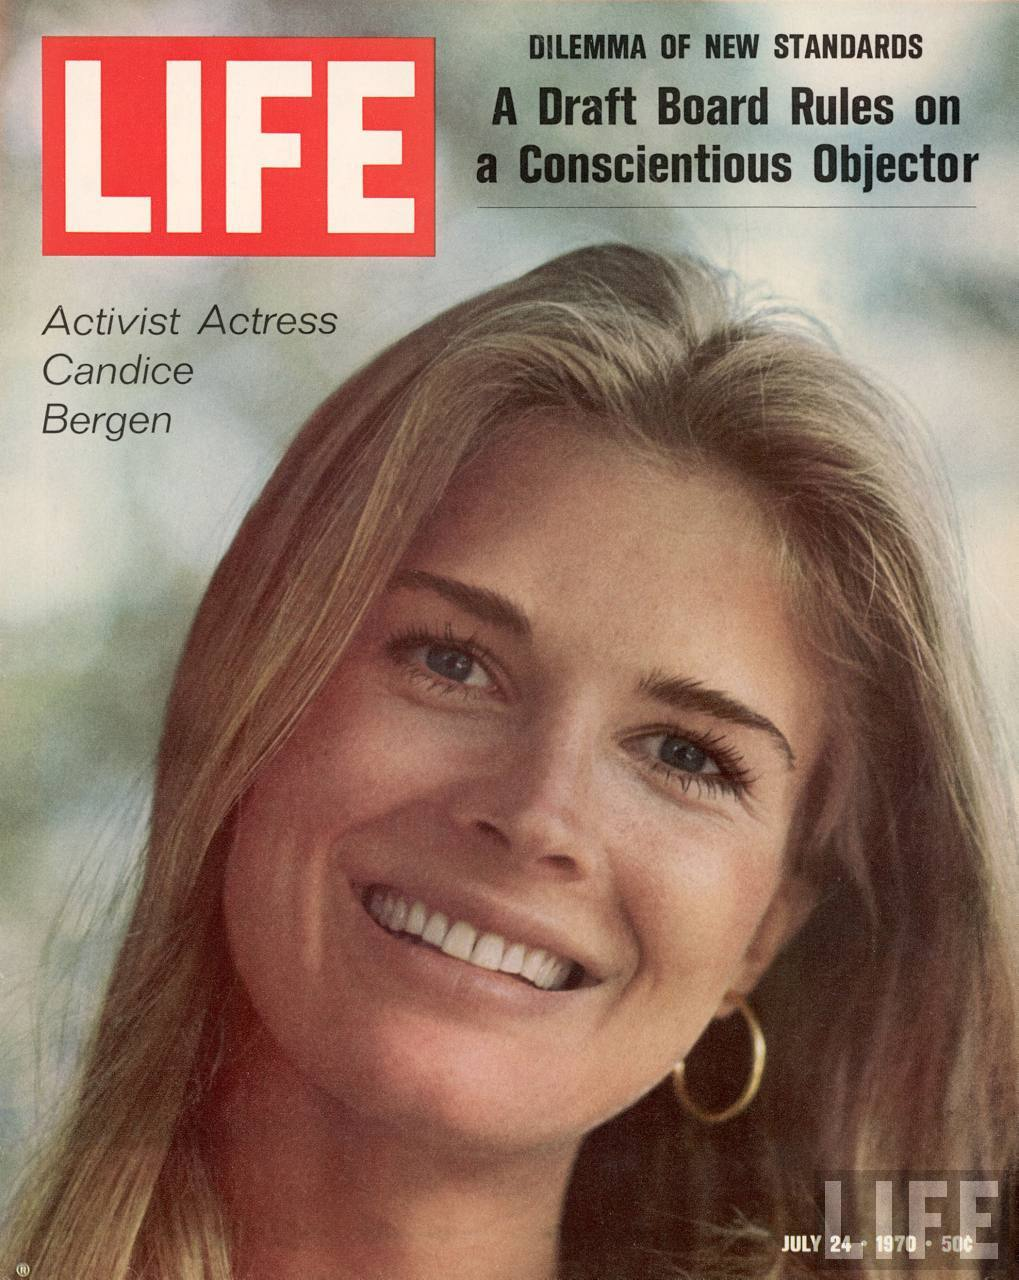 LIFE magazine cover dated 07-24-1970 w. logo & legend Activist Actress Candice Bergen, Photo by Mich